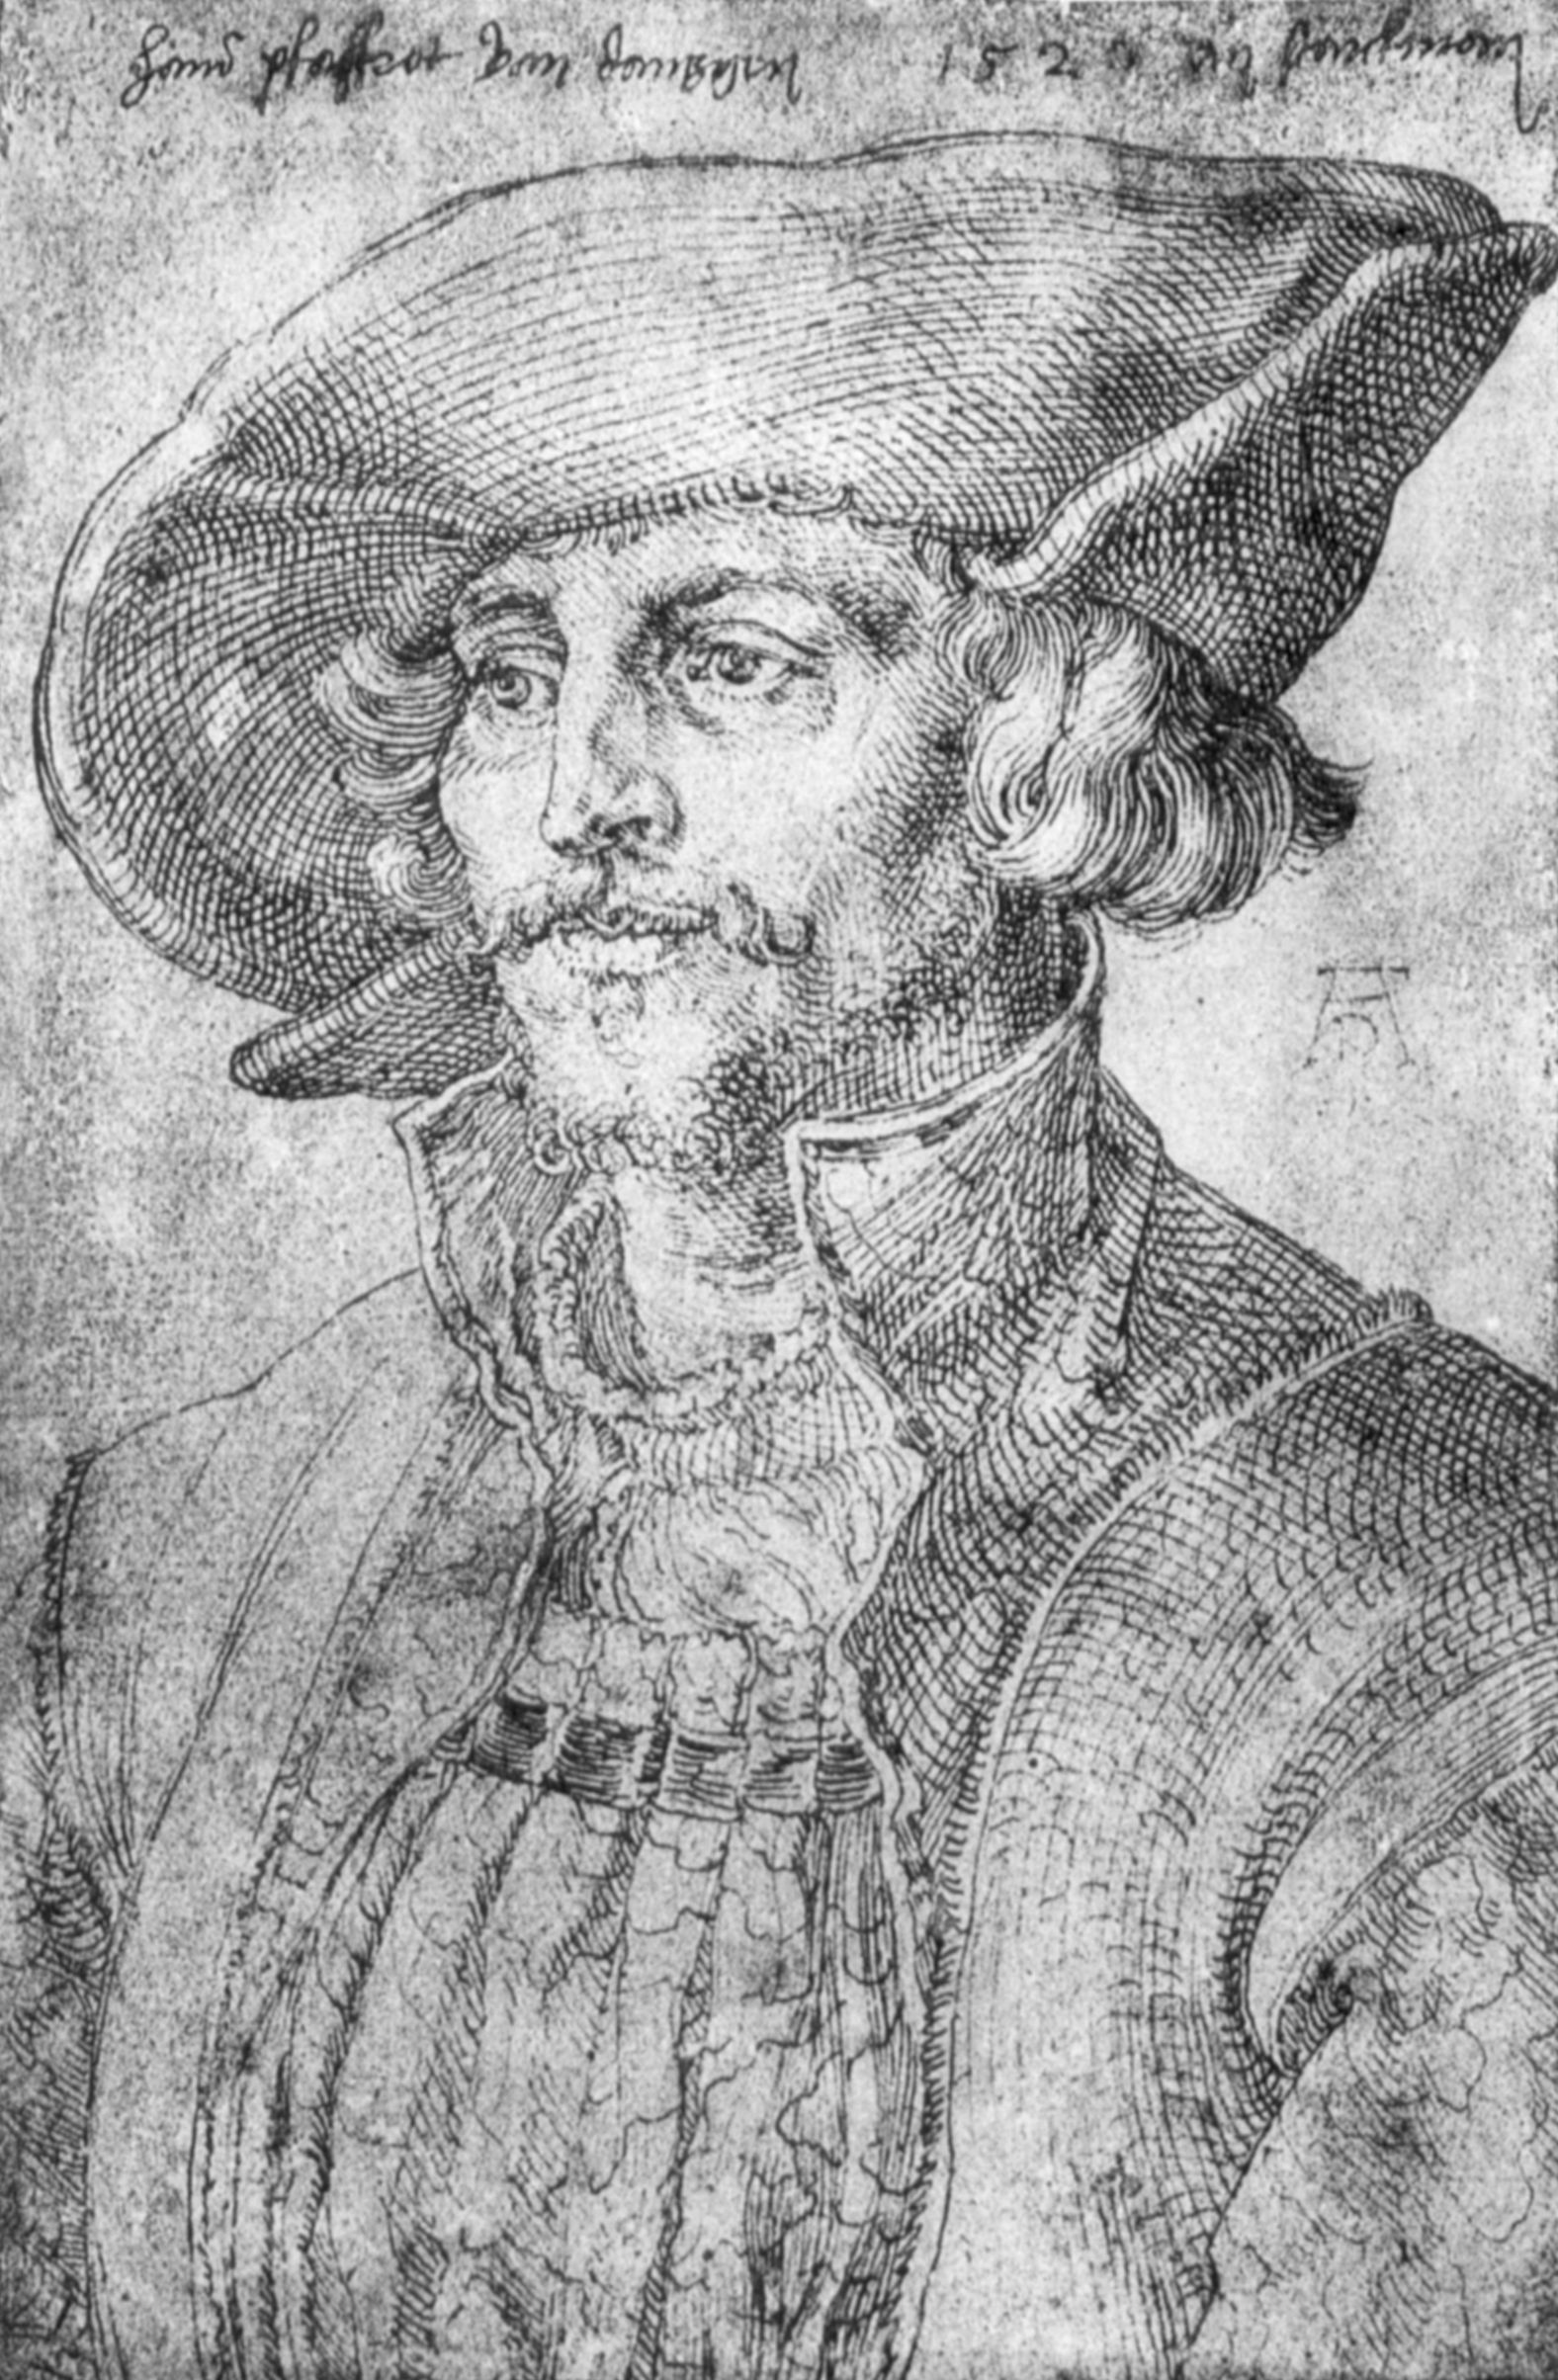 https://uploads2.wikiart.org/images/albrecht-durer/portrait-of-hans-pfaffrot-of-gdansk.jpg